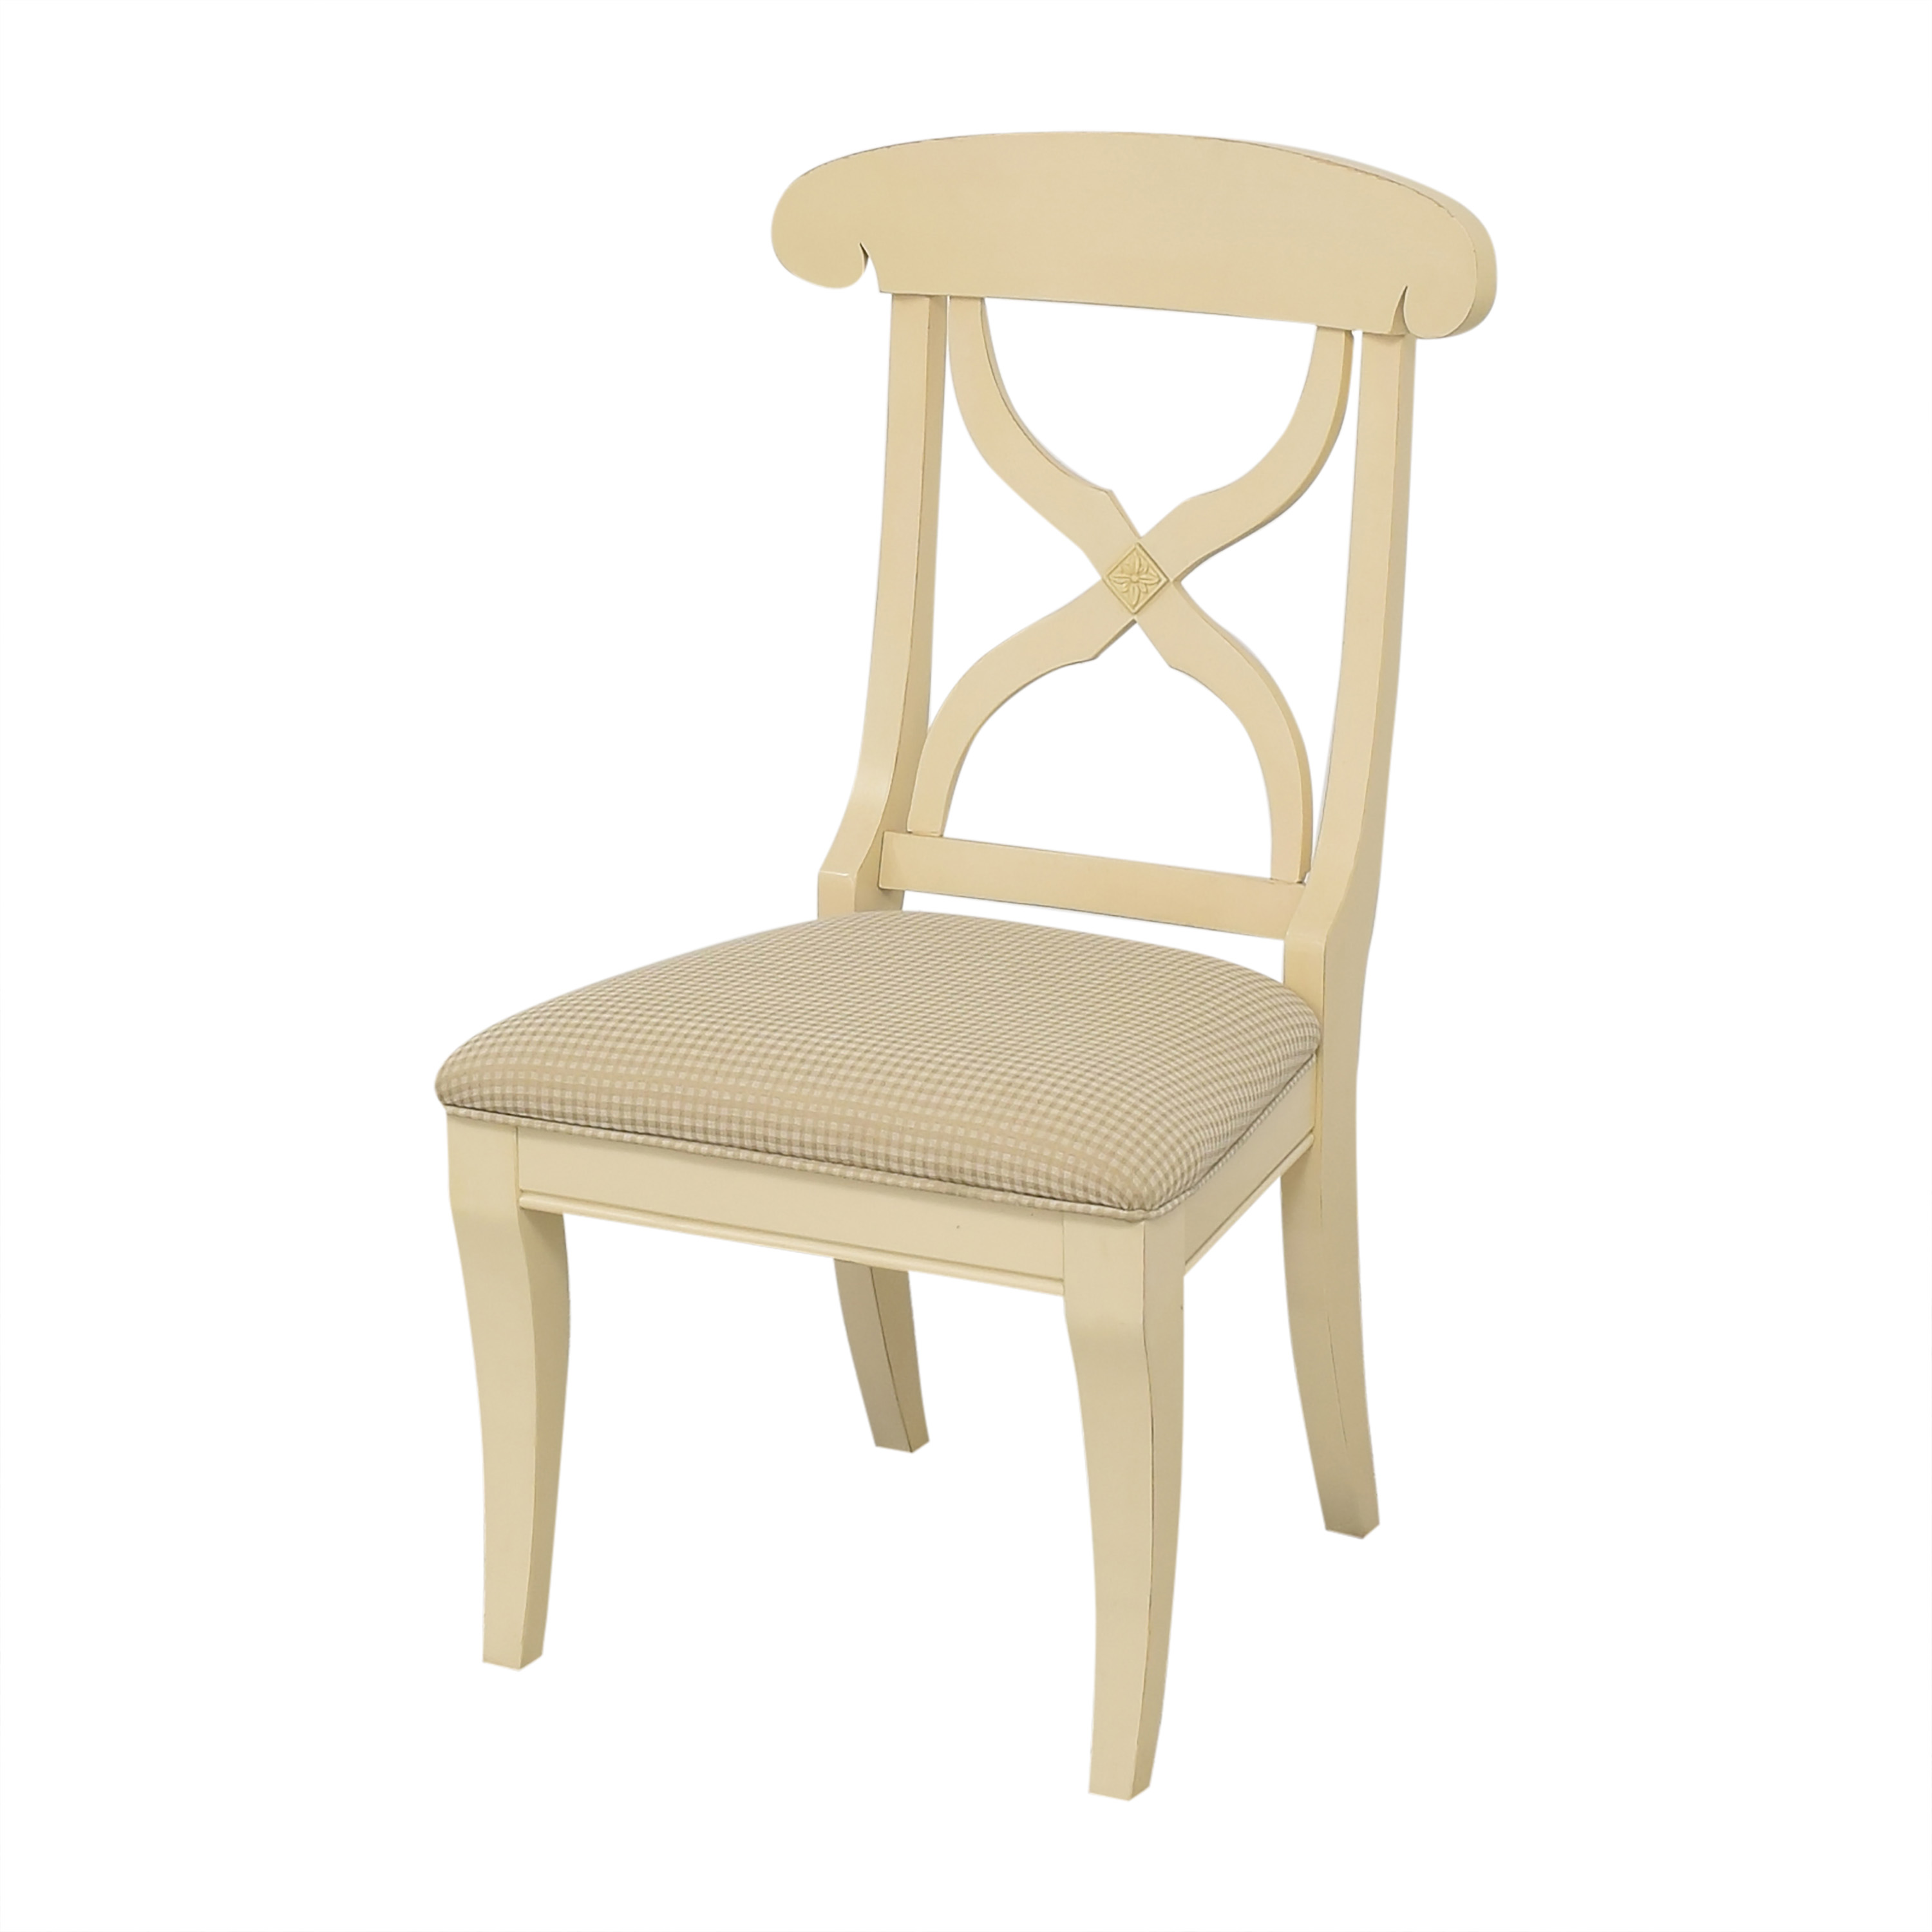 American Furniture Warehouse American Furniture Warehouse Cross Back Dining Chairs discount